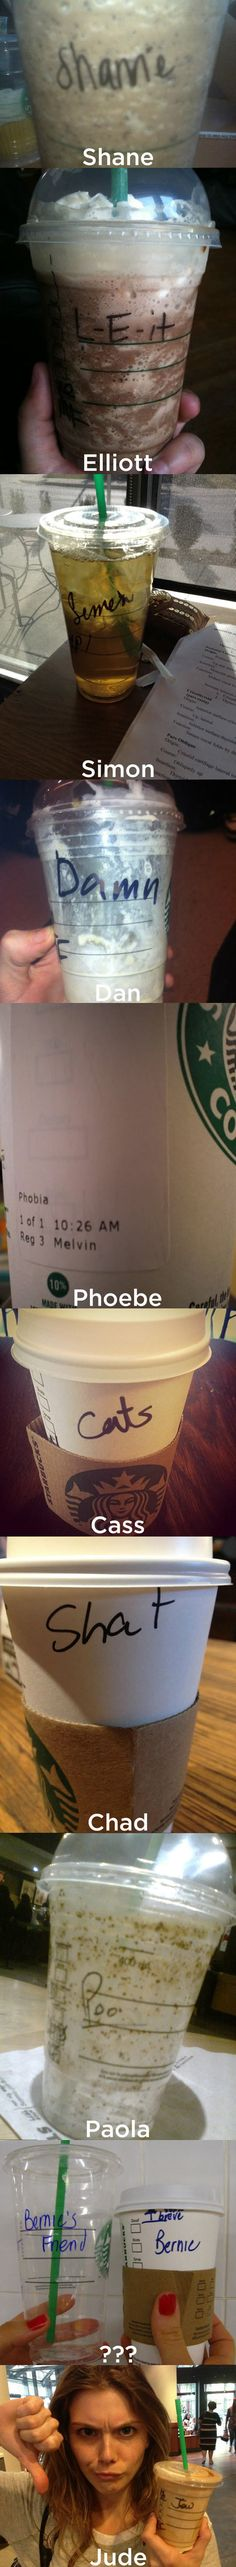 Starbuck's can't spell my name, round 3